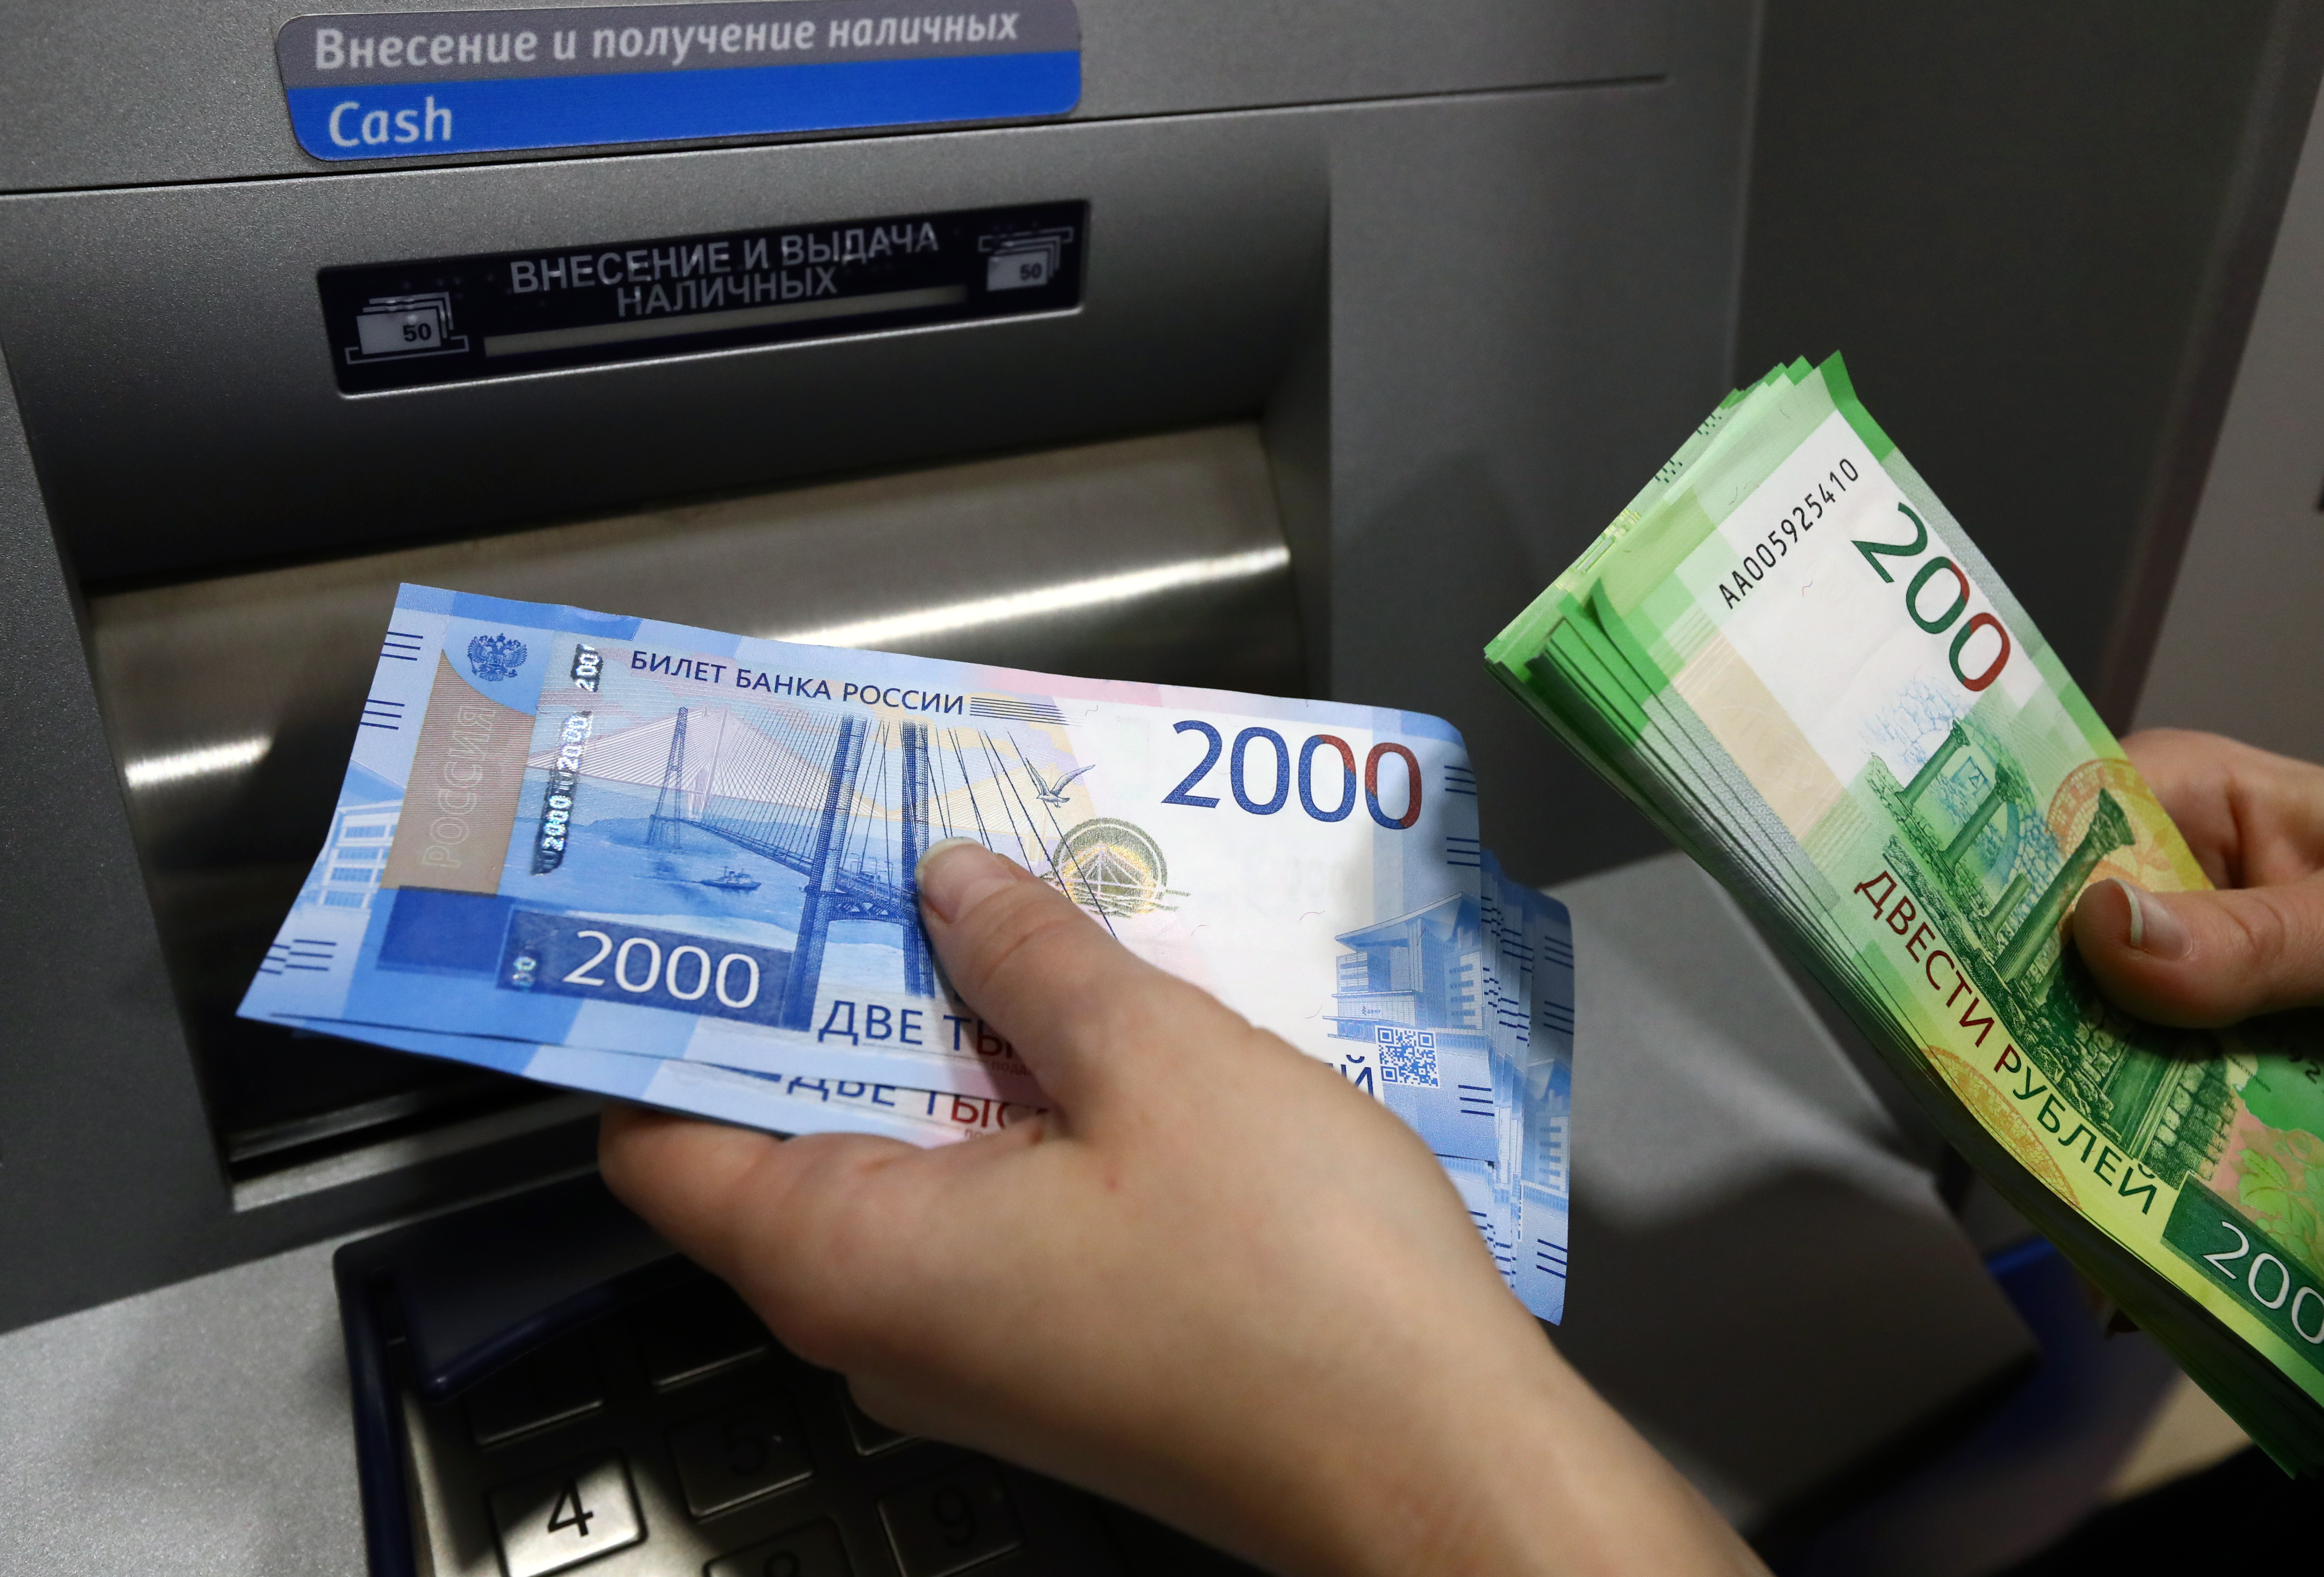 A lot of stores won't have change for larger bills. Photo by Stanislav Krasilnikov/TASS via Getty Images.